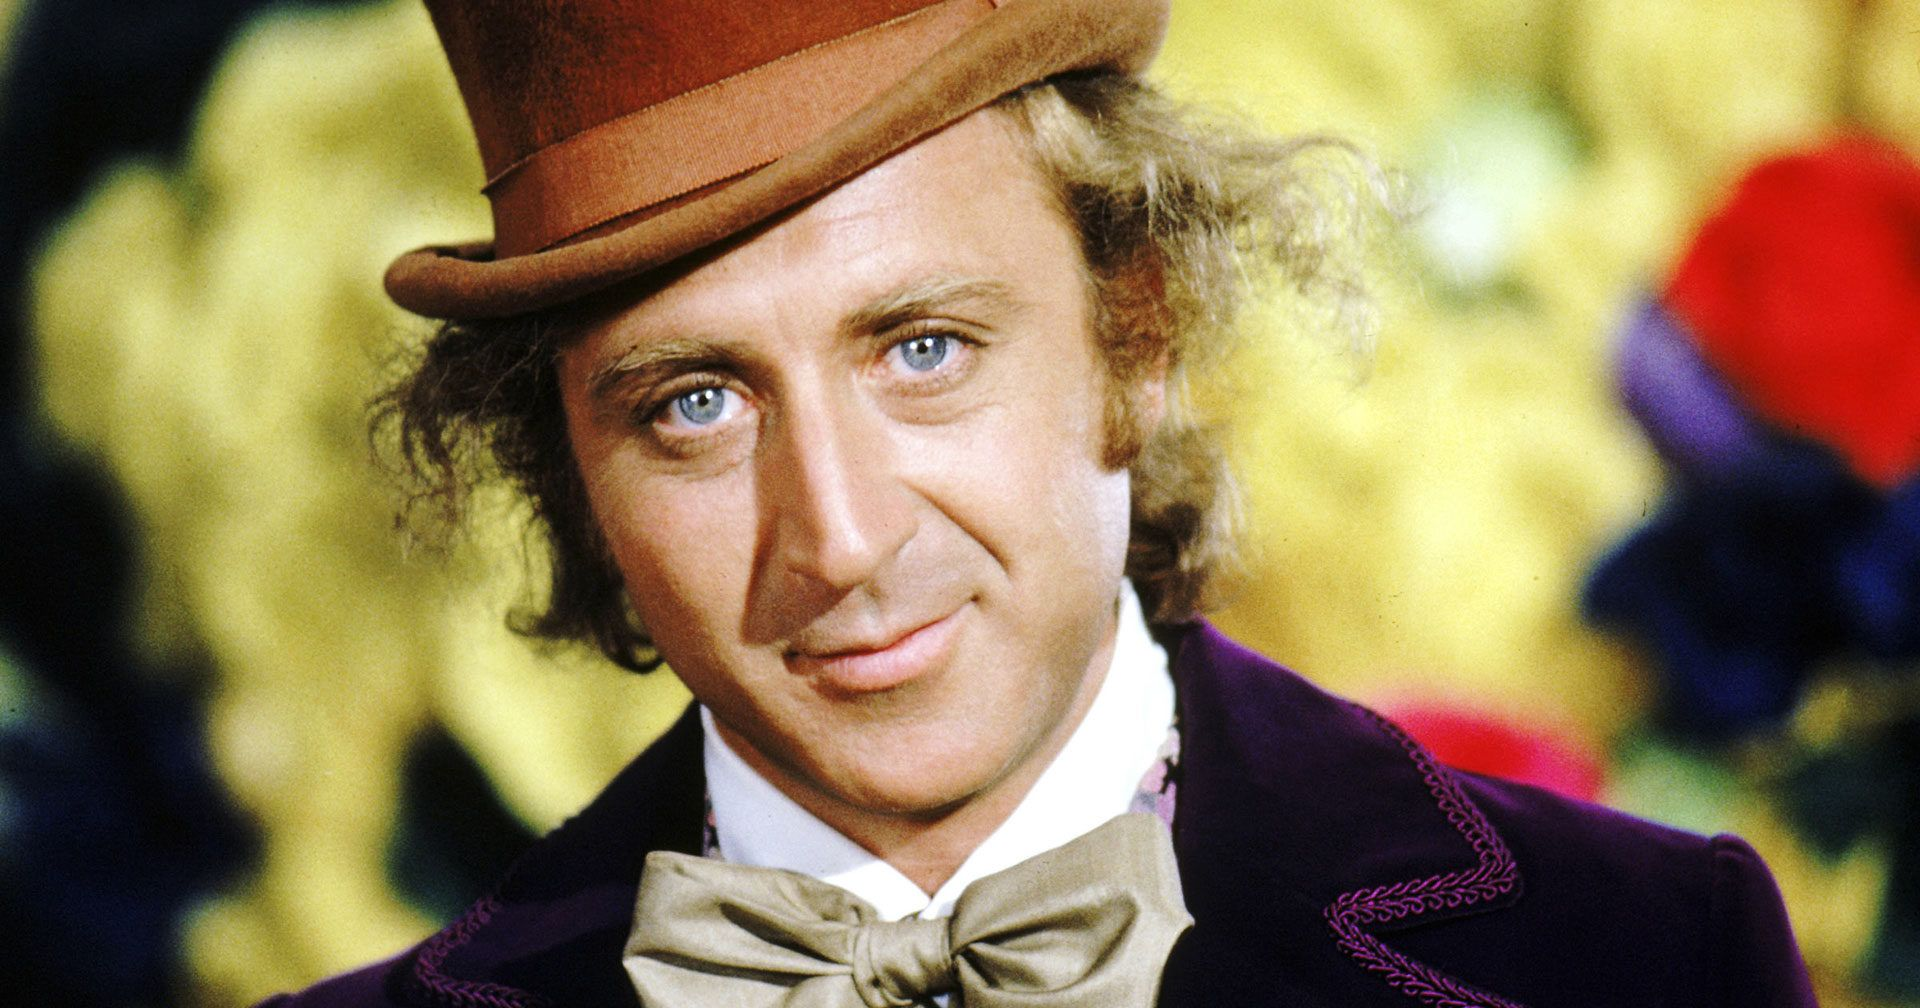 EFBH3A GENE WILDER WILLY WONKA & THE CHOCOLATE FACTORY (1971)